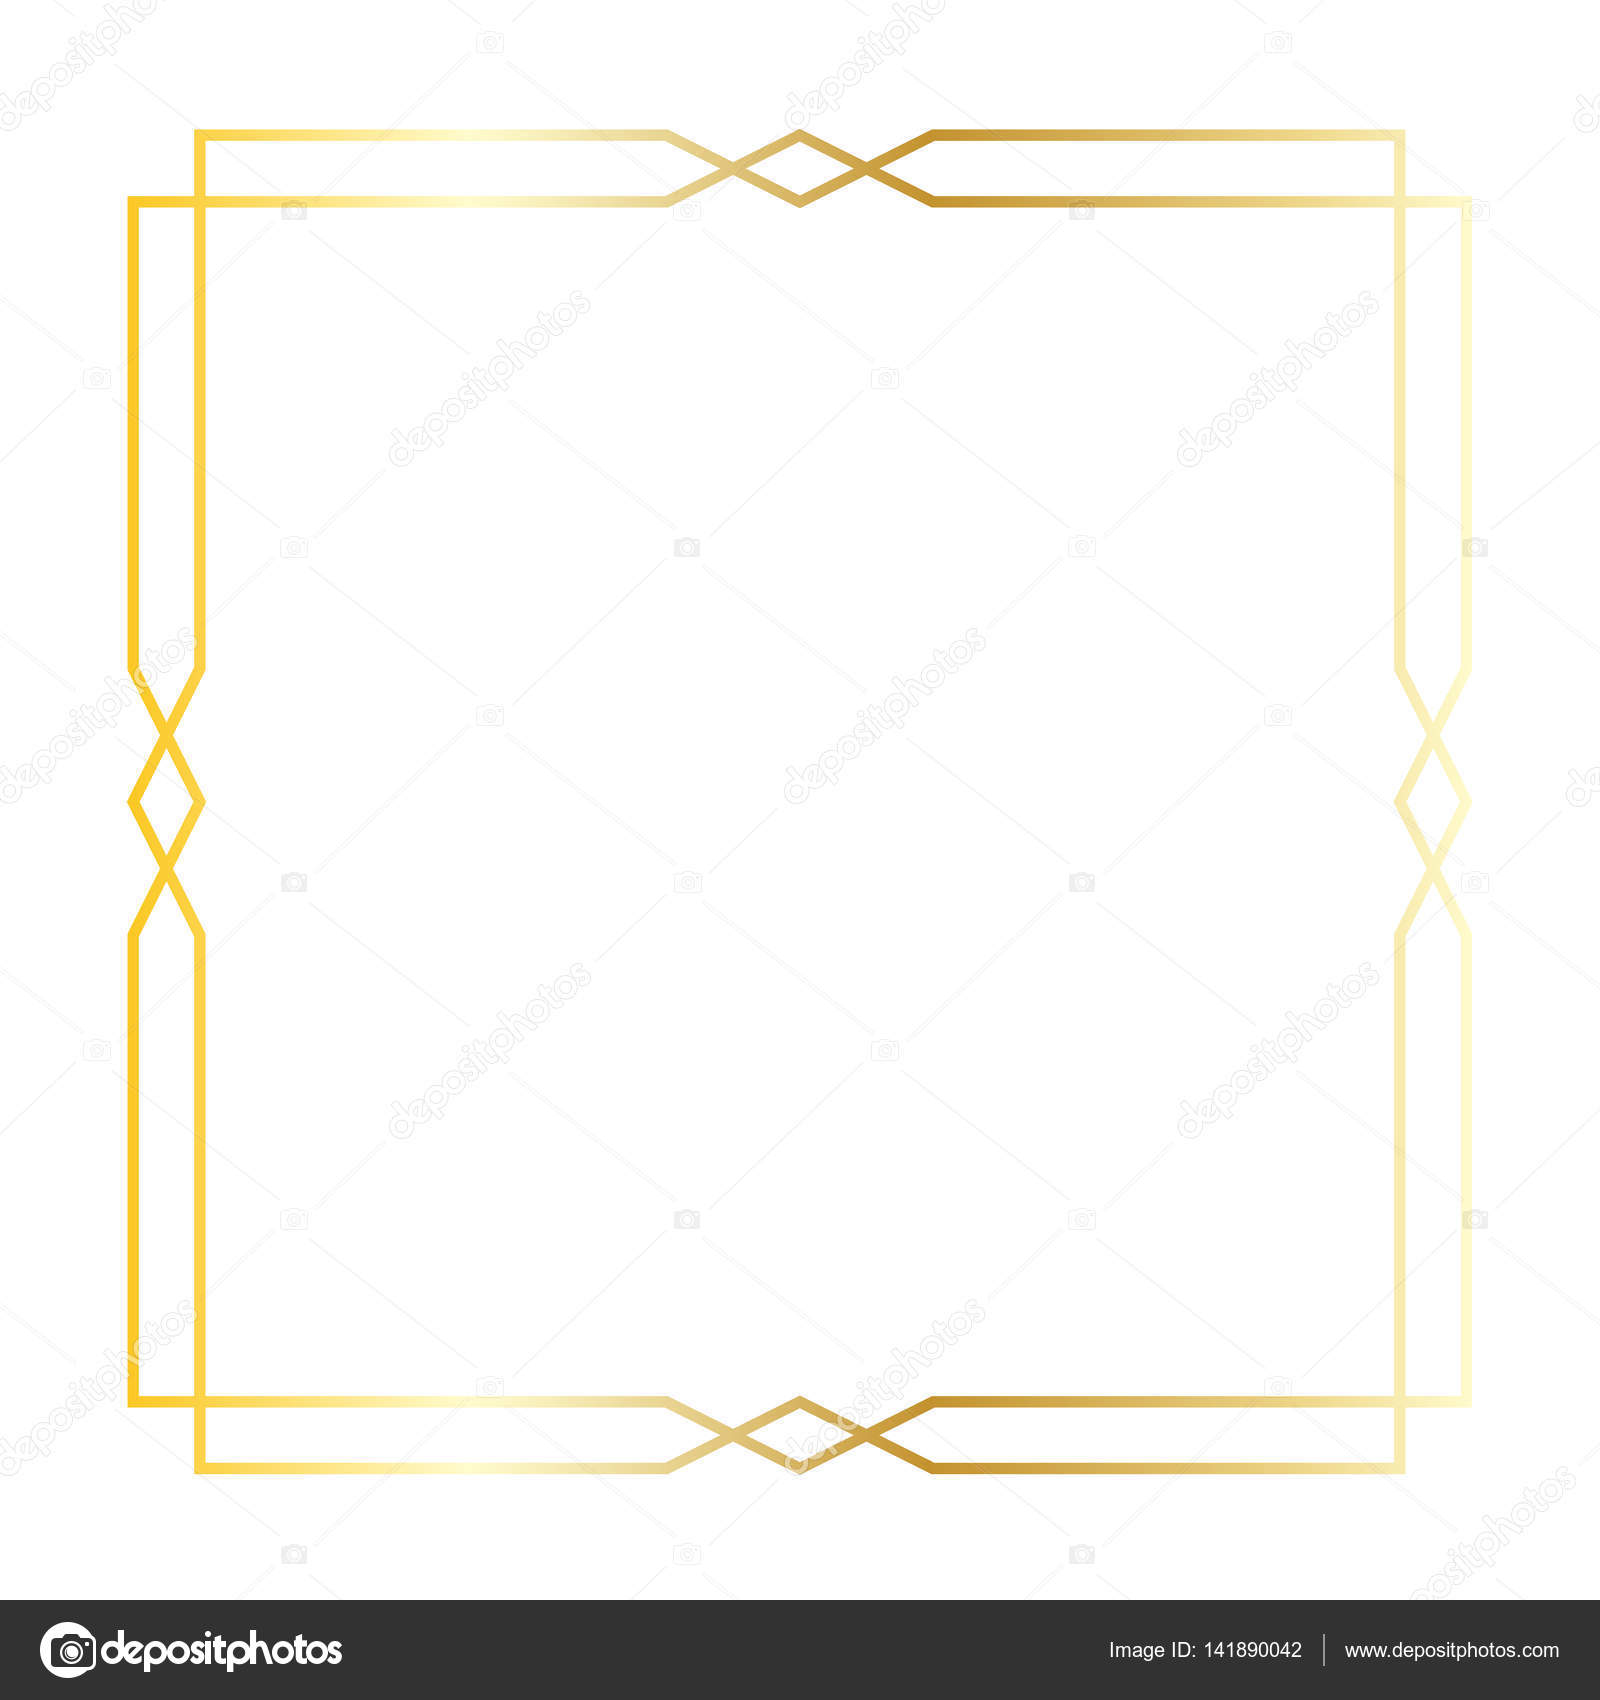 the gallery for gt square gold frame border